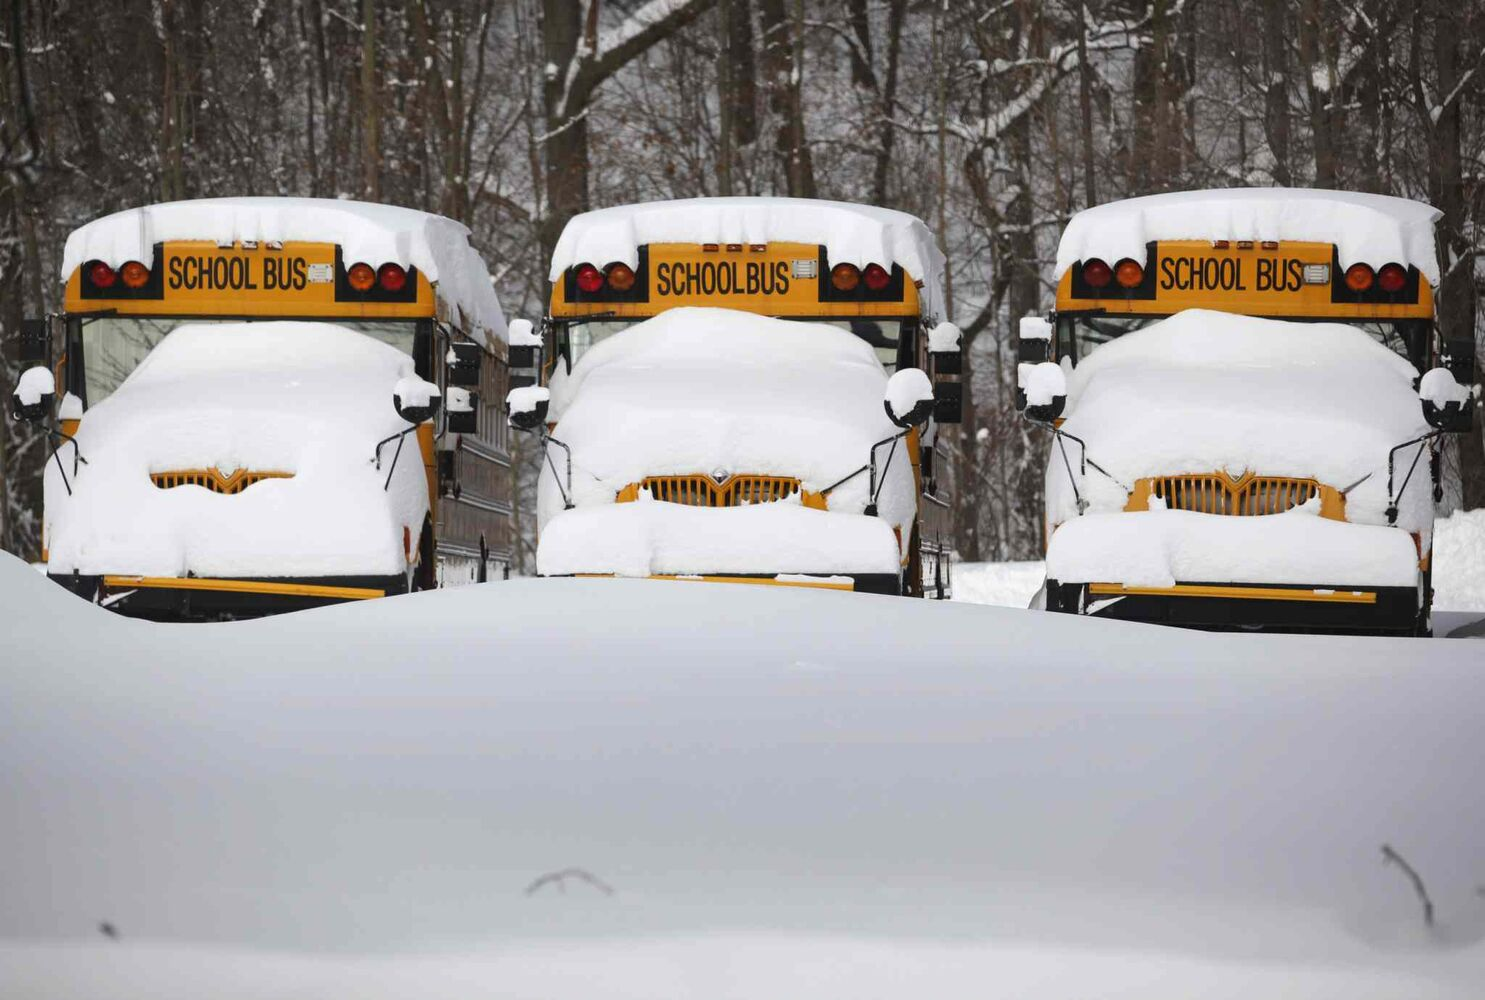 School buses parked at the Howard Street KPS administration building are covered in snow Tuesday in Kalamazoo, Mich. The region experienced freezing temperatures Tuesday.  (Mark Bugnaski / The Associated Press)